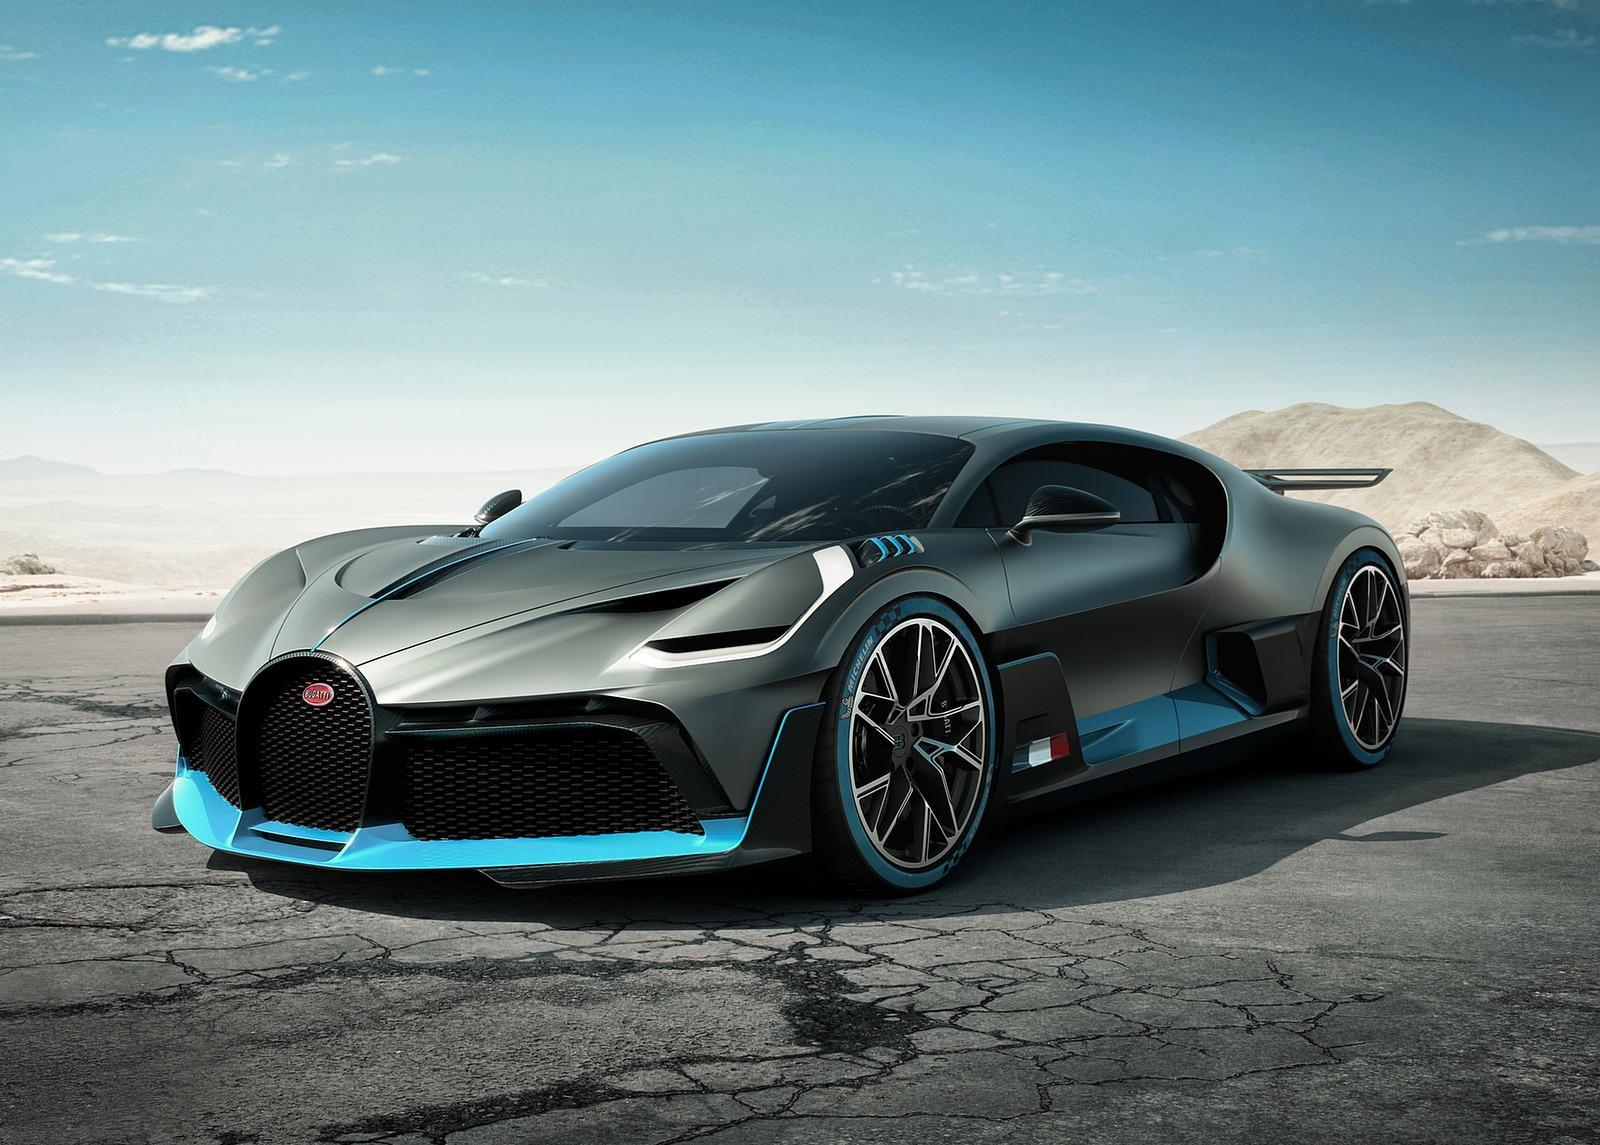 Wallpaper Car Bugatti Hd For Android Apk Download